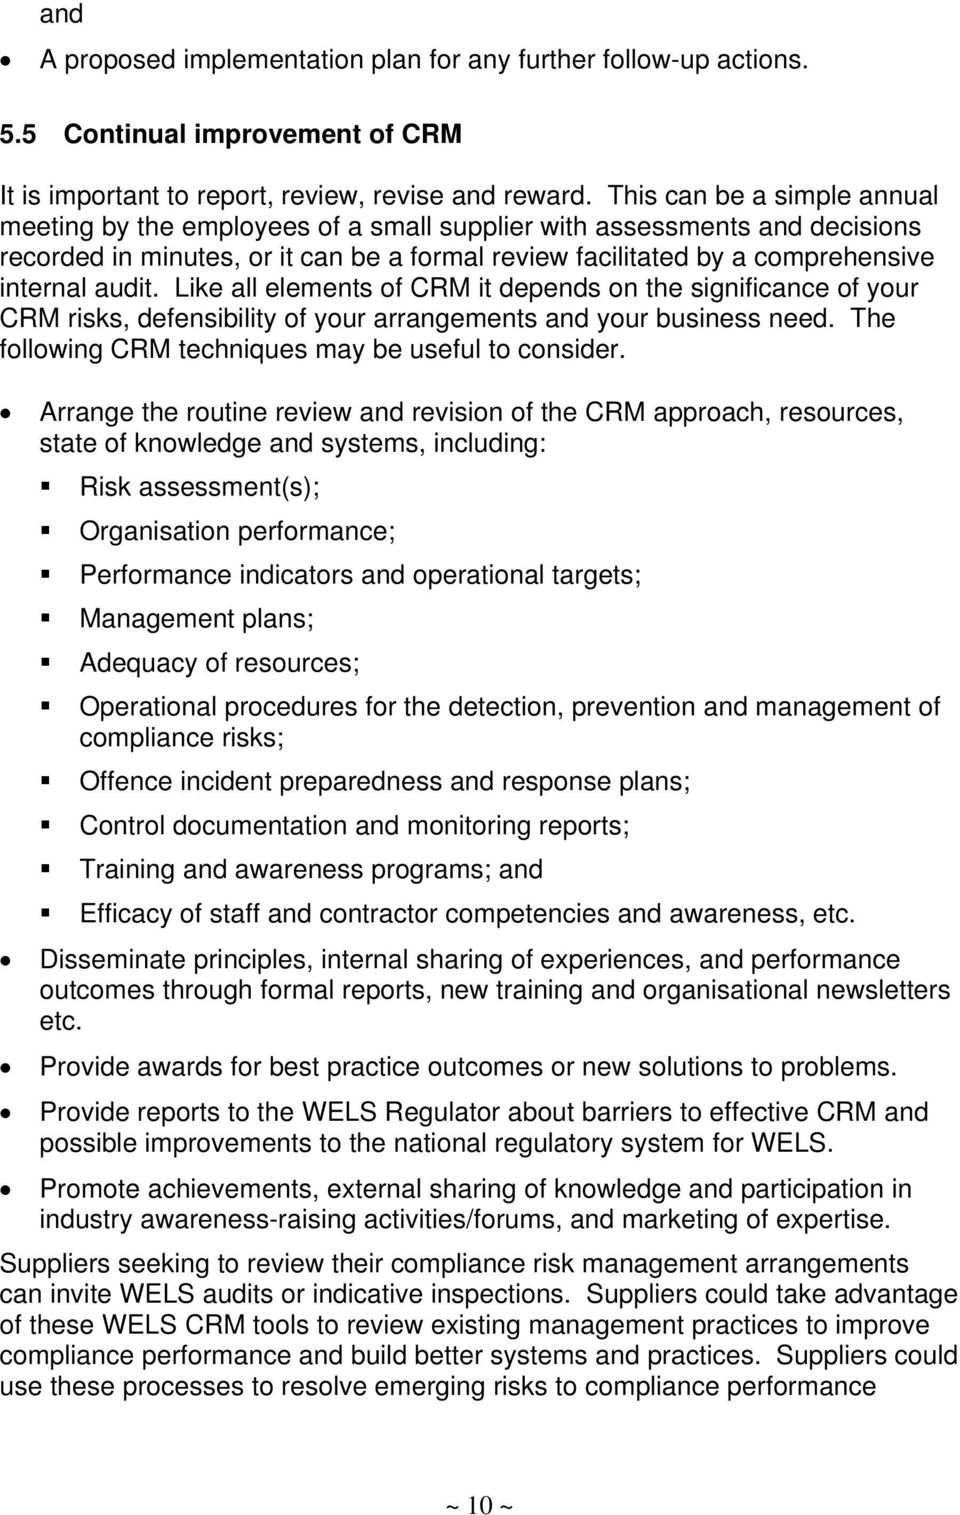 Like all elements of CRM it depends on the significance of your CRM risks, defensibility of your arrangements and your business need. The following CRM techniques may be useful to consider.